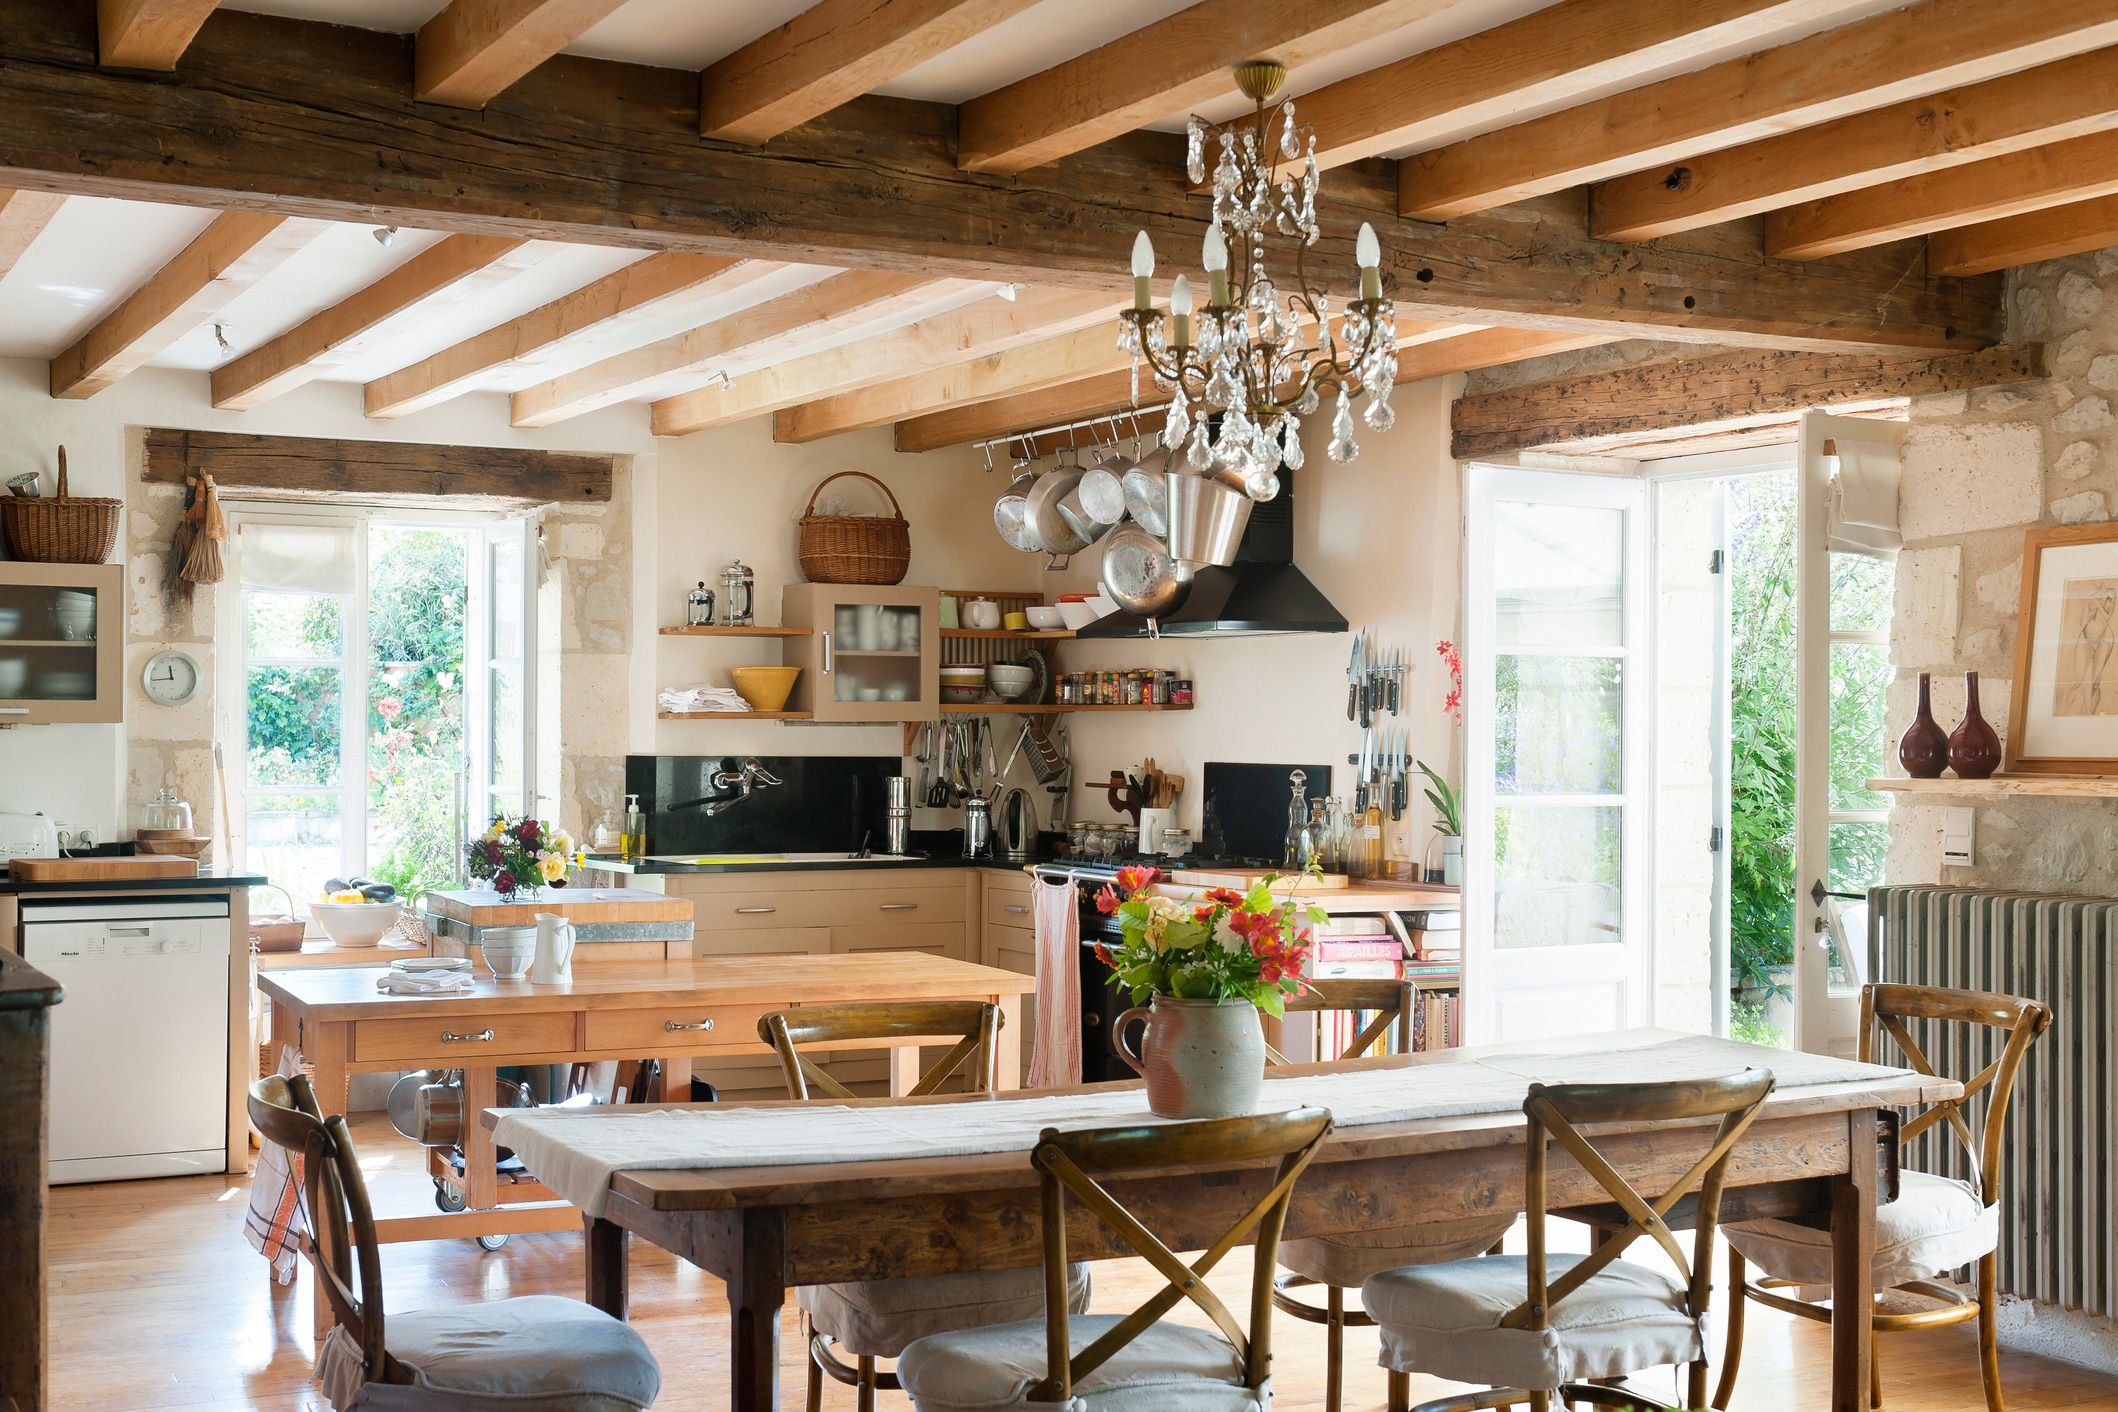 Style your home with french country decor for French country decor kitchen ideas